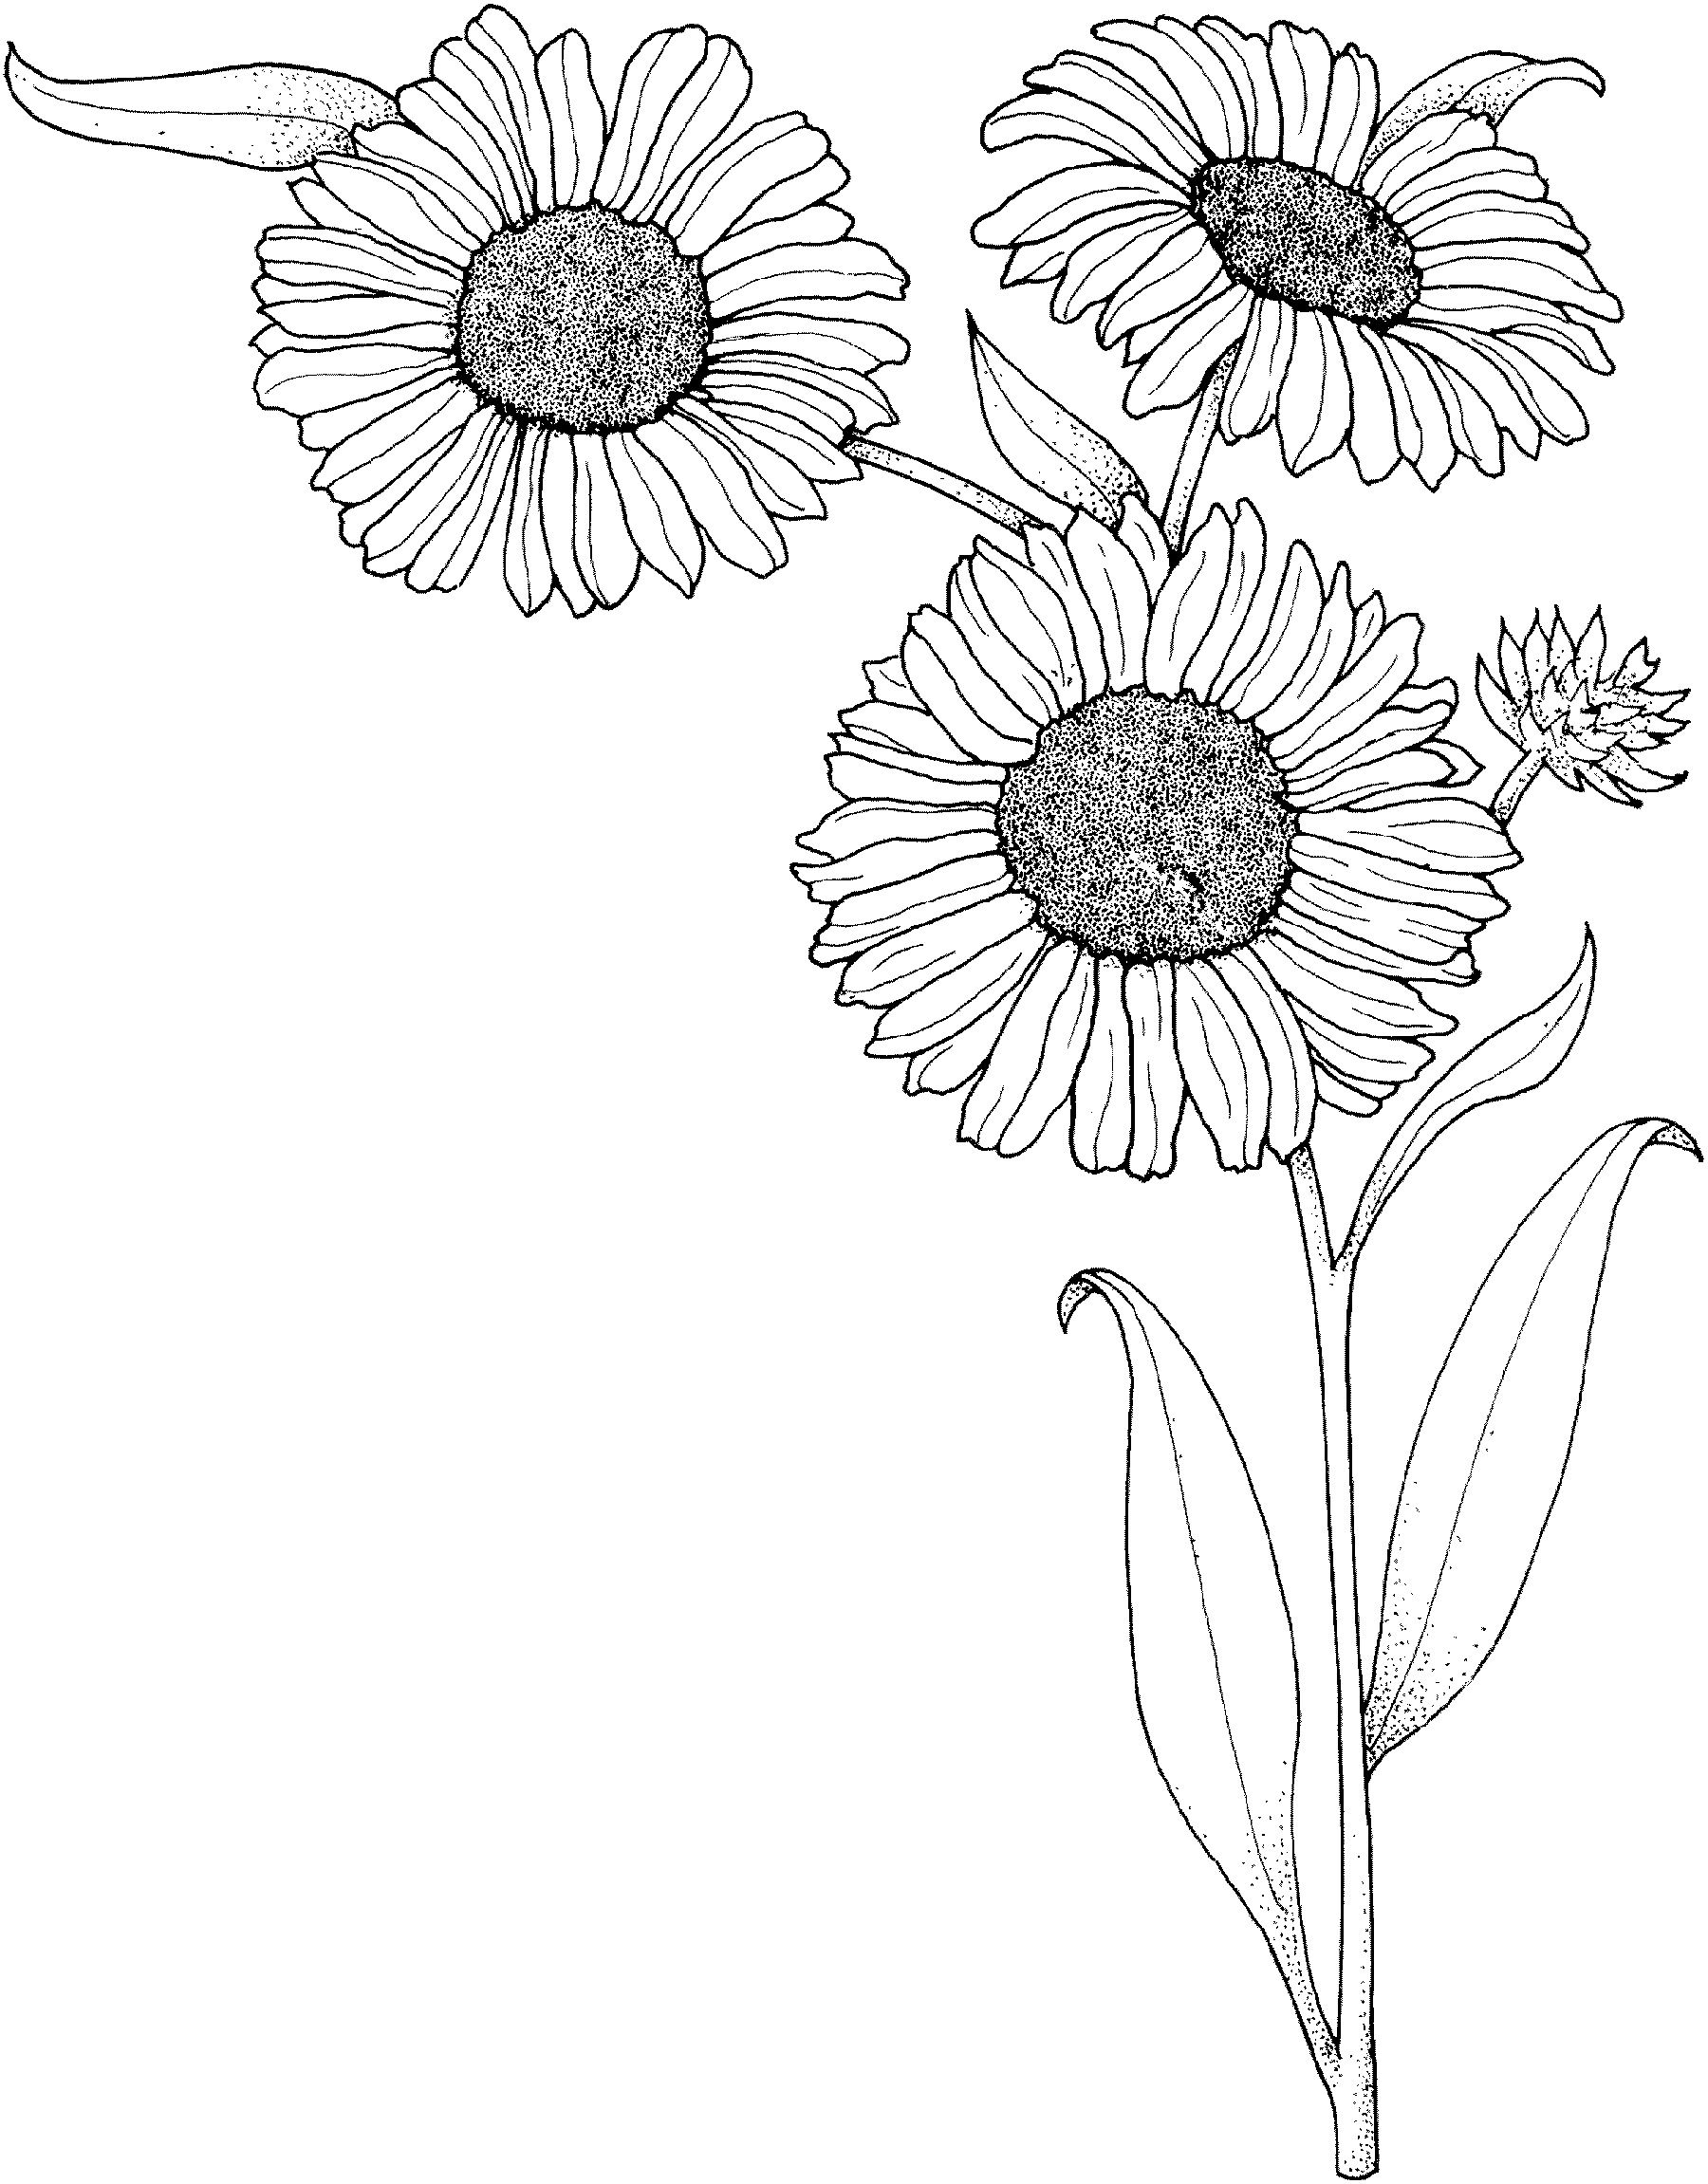 Sunflower Coloring Page Realistic